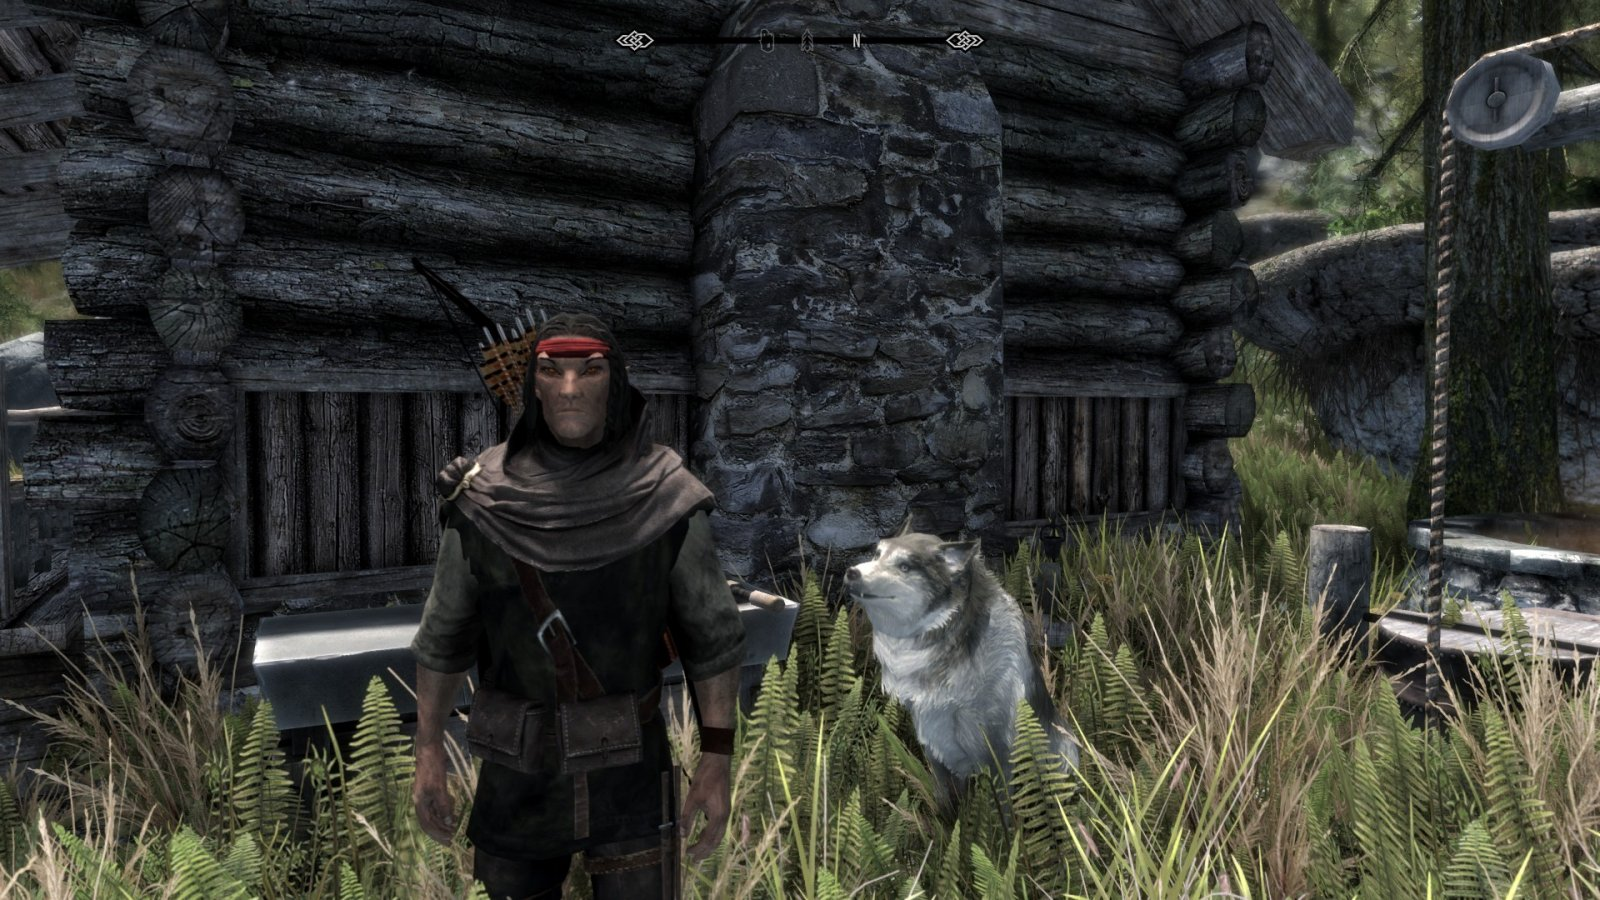 A Dog and his Elf